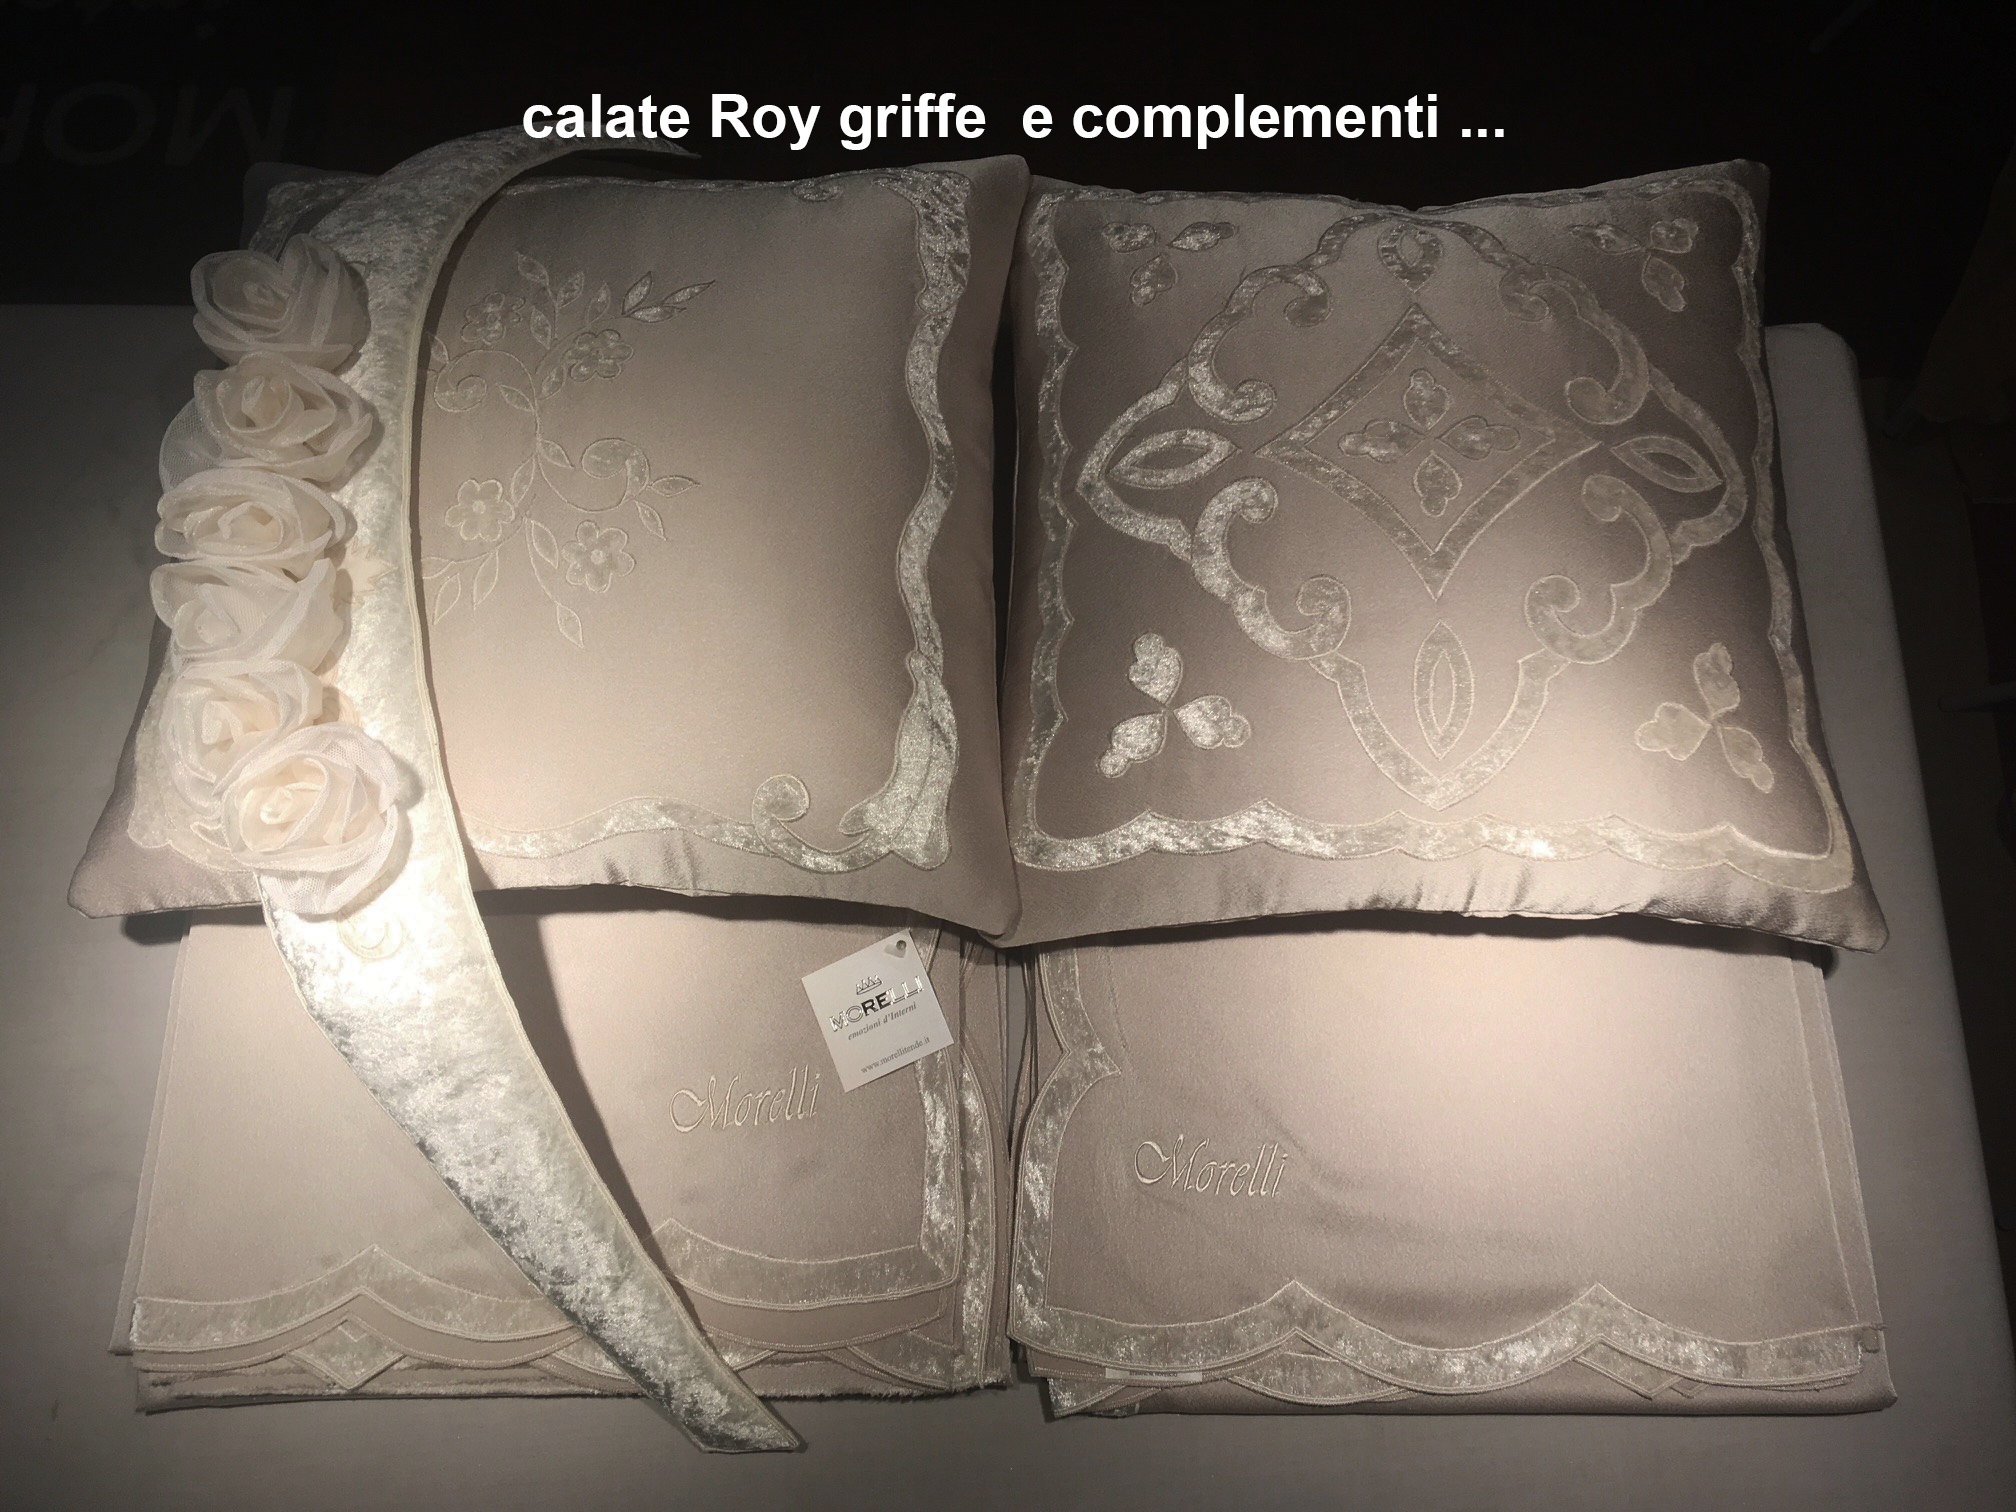 05 ROY calate e complementi